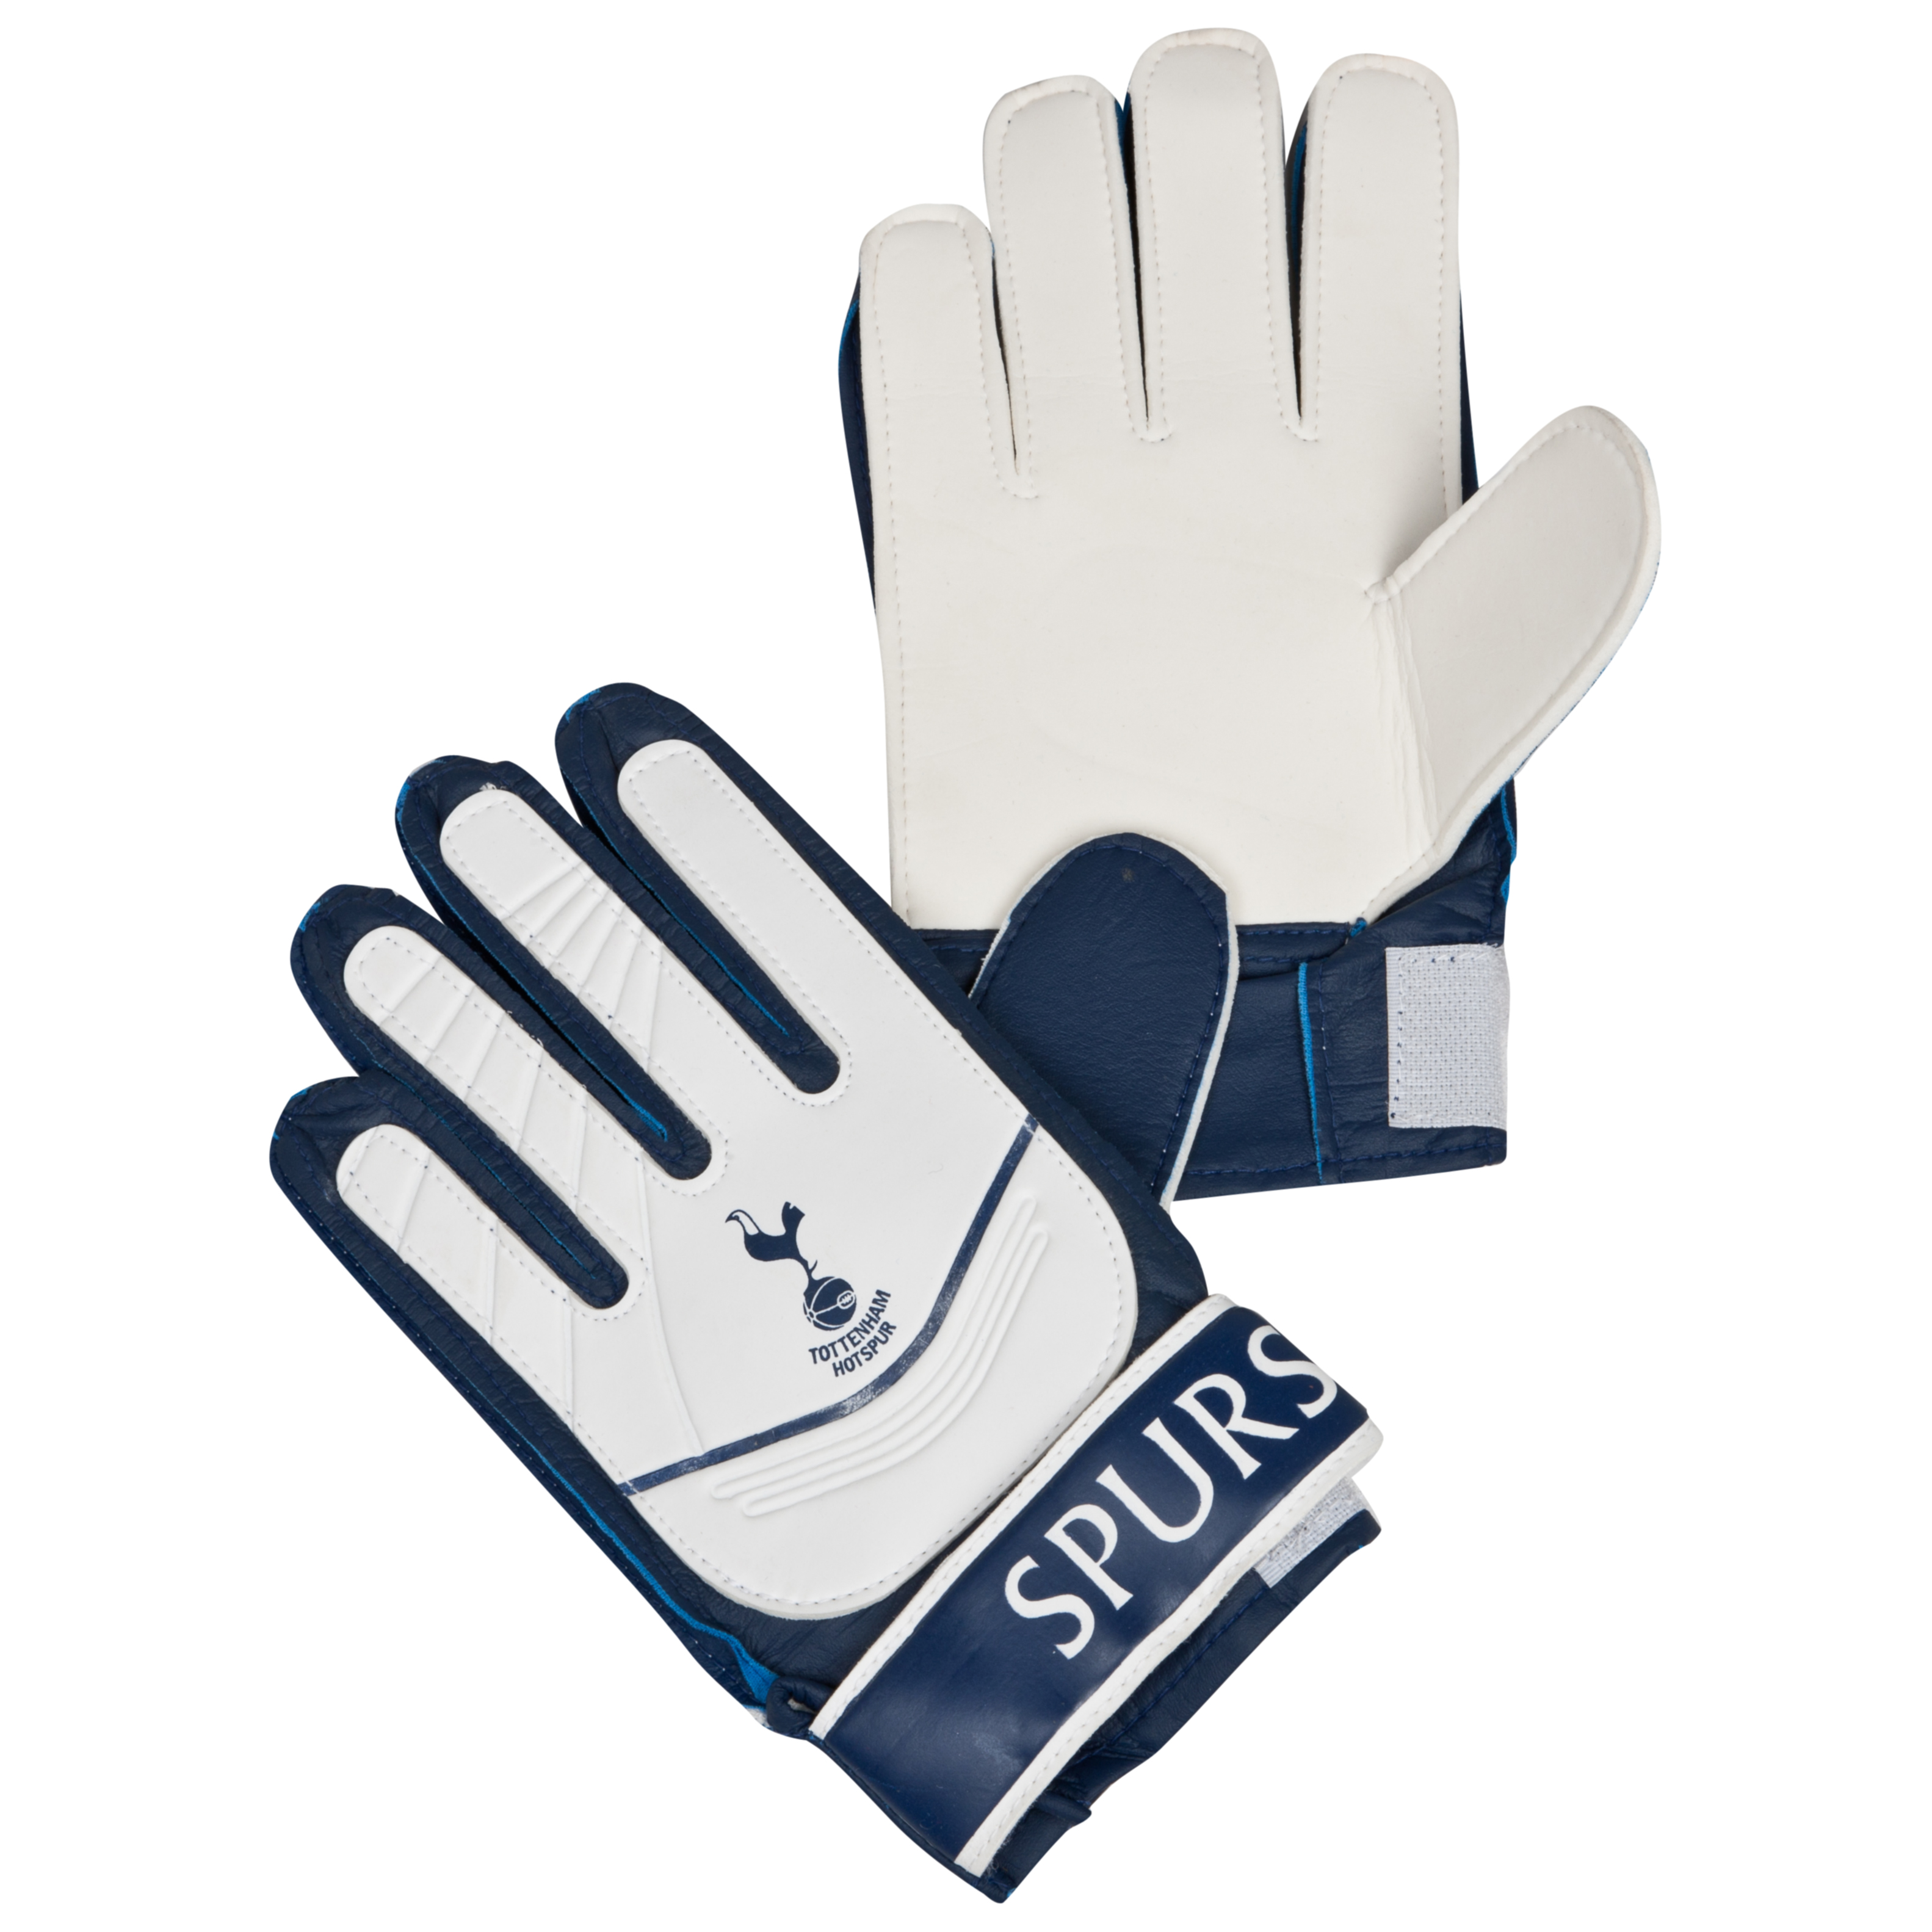 Tottenham Hotspur Goalkeeper Gloves